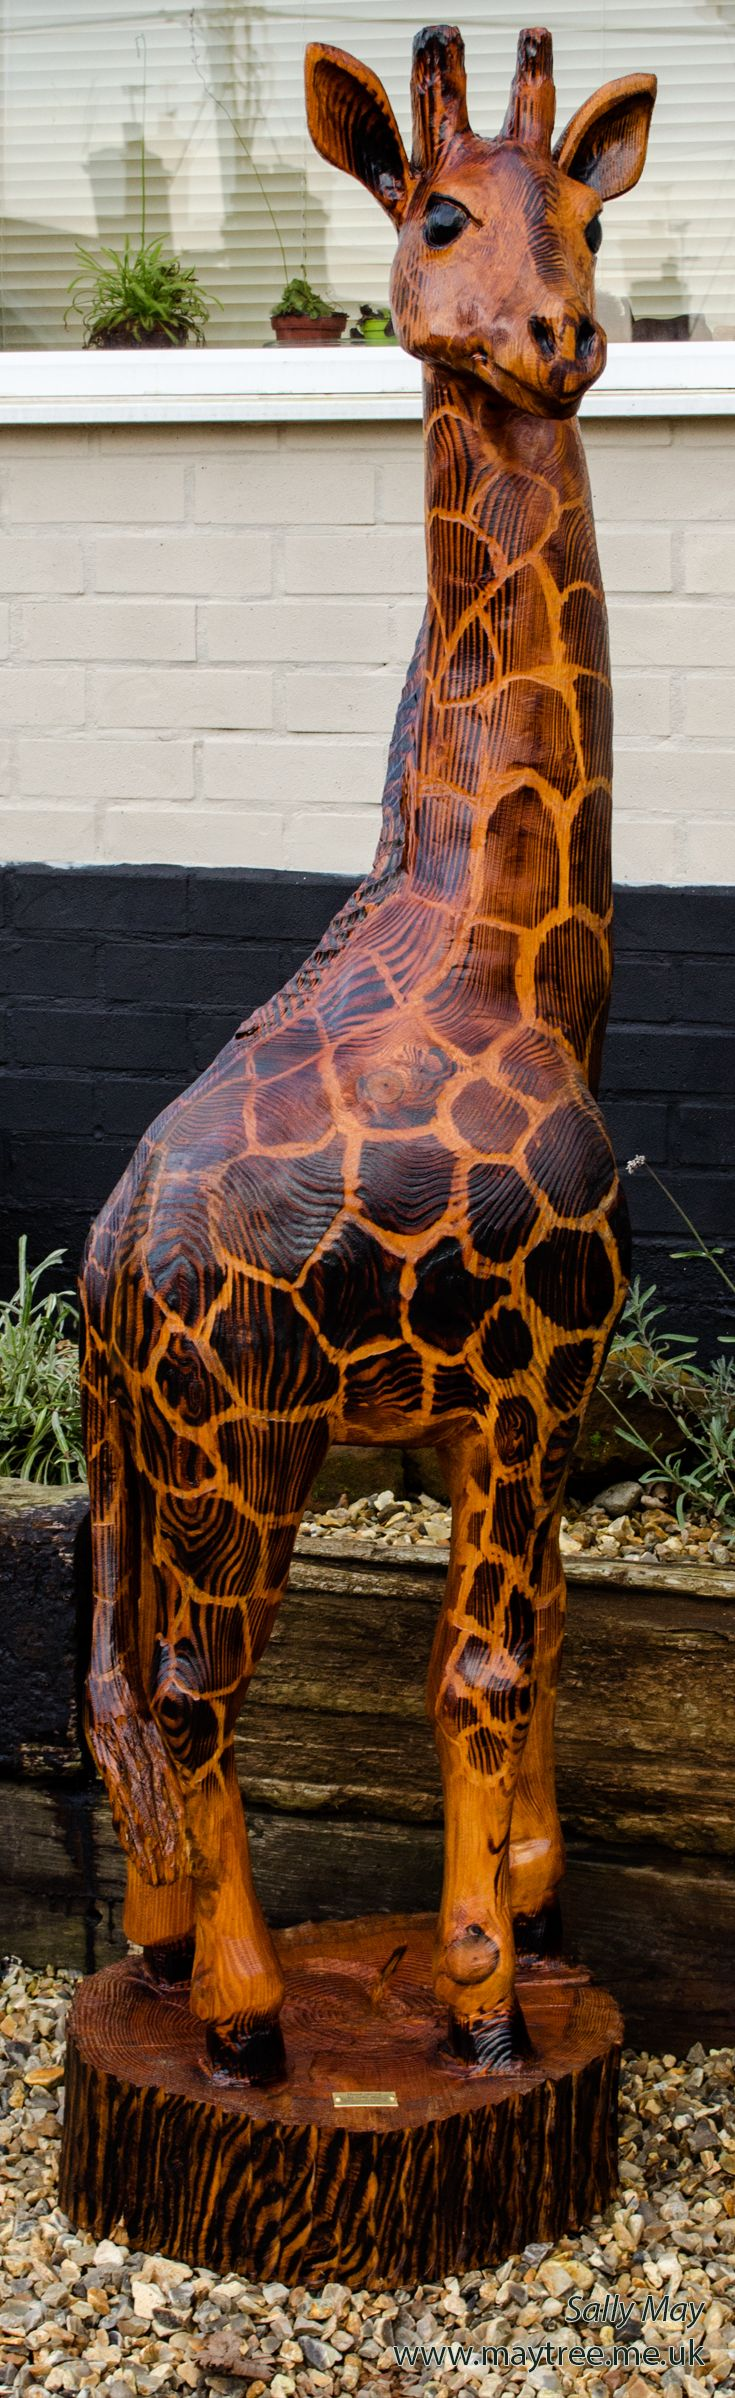 Giraffe. Chainsaw carving by Sally May